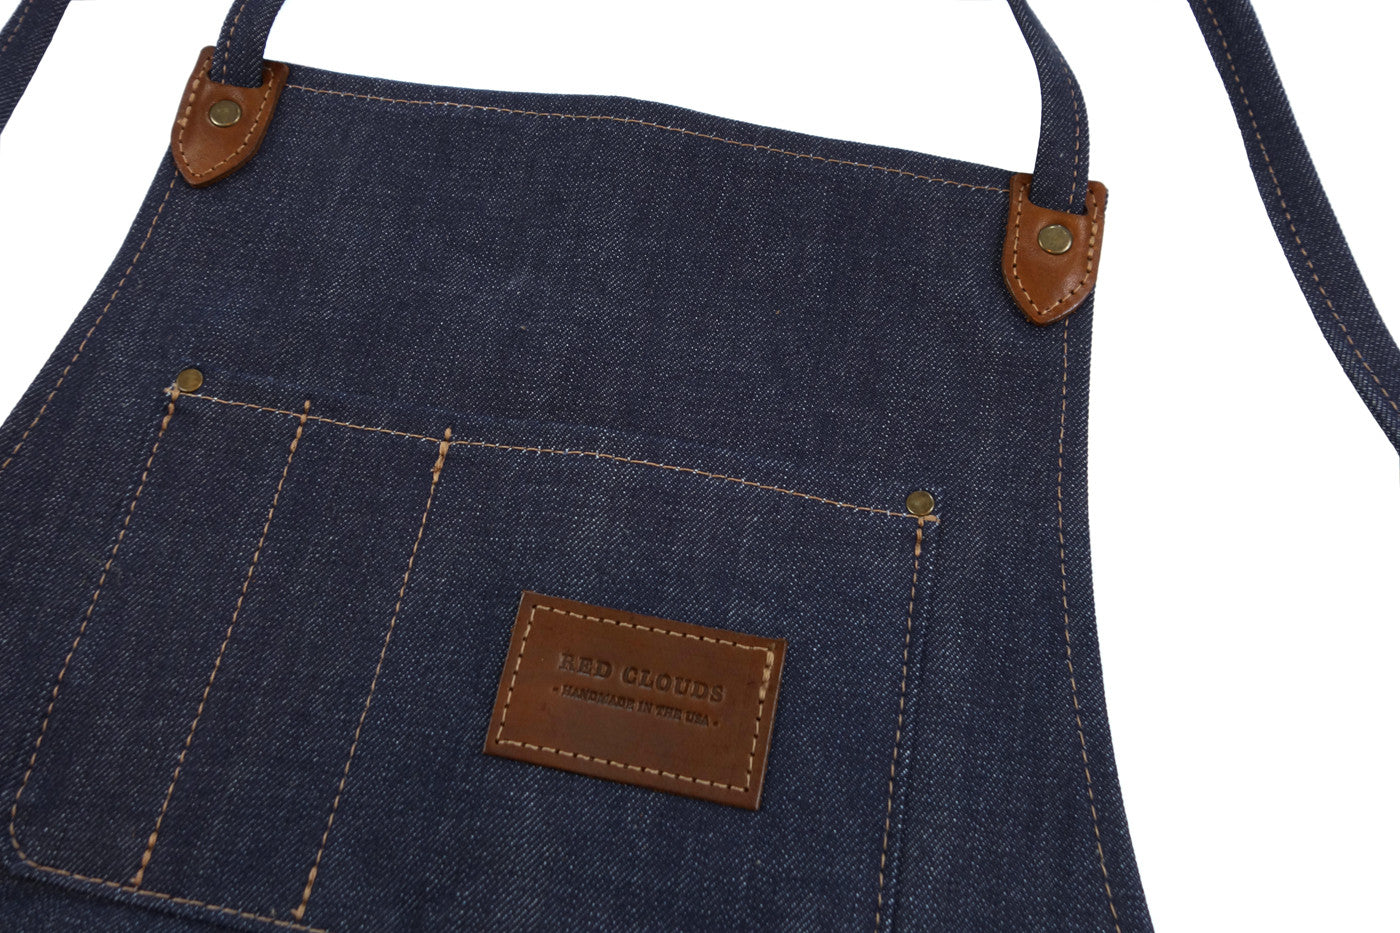 Winston apron, denim apron, selvedge denim apron, red clouds apron, selvedge denim, woodworking apron, metalworking apron, hand eye supply, shop gear, workwear, made in usa, made in portland, Drawing inspiration from classic shop aprons used by wood and metal workers for centuries, the Winston Apron combines a classic look and feel with modern feature and construction updates that enhance the product's longevity.